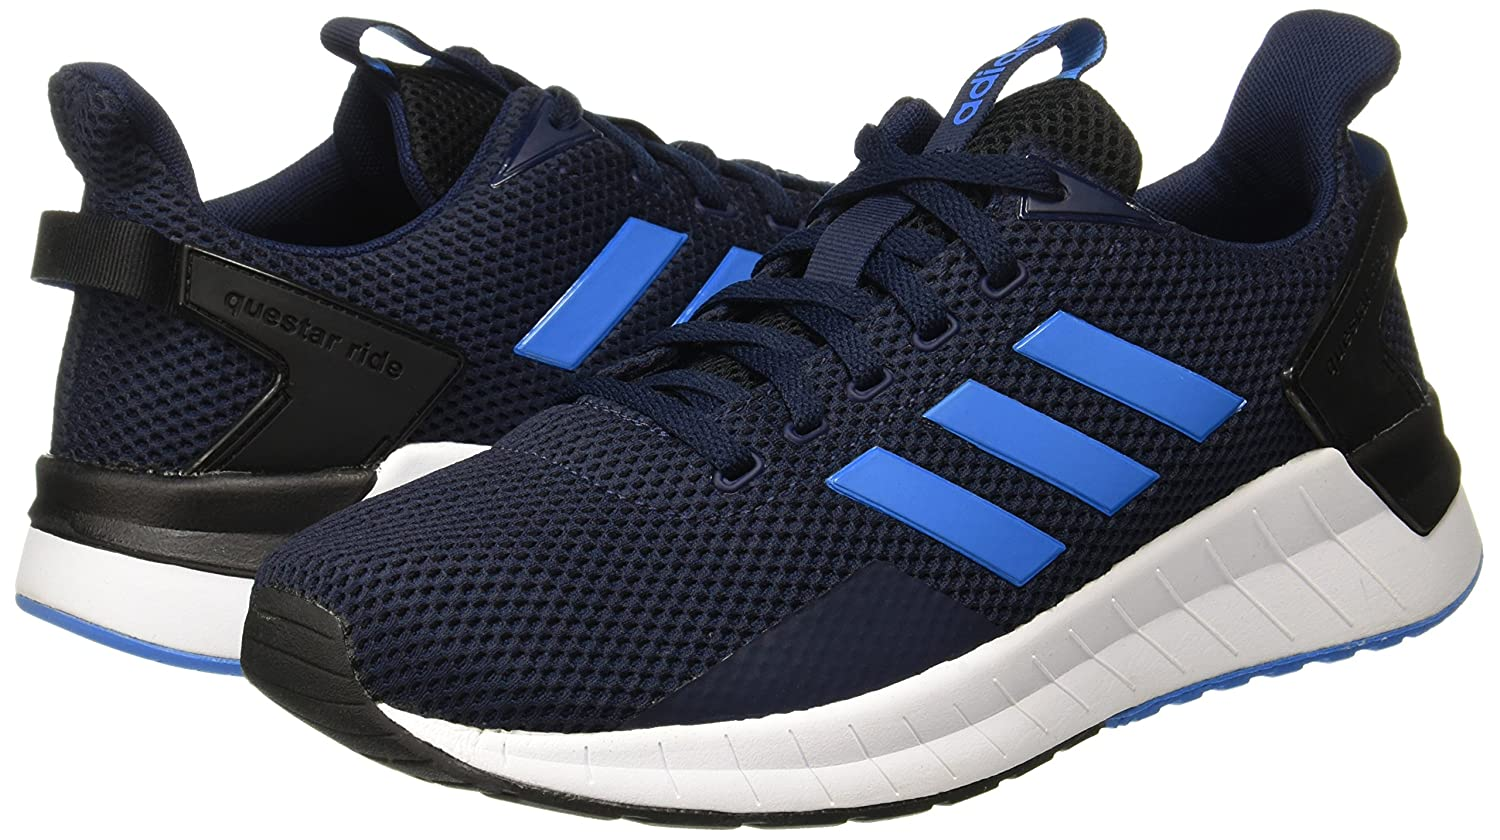 835150577eacb7 Adidas Men s Questar Ride Running Shoes  Buy Online at Low Prices in India  - Amazon.in